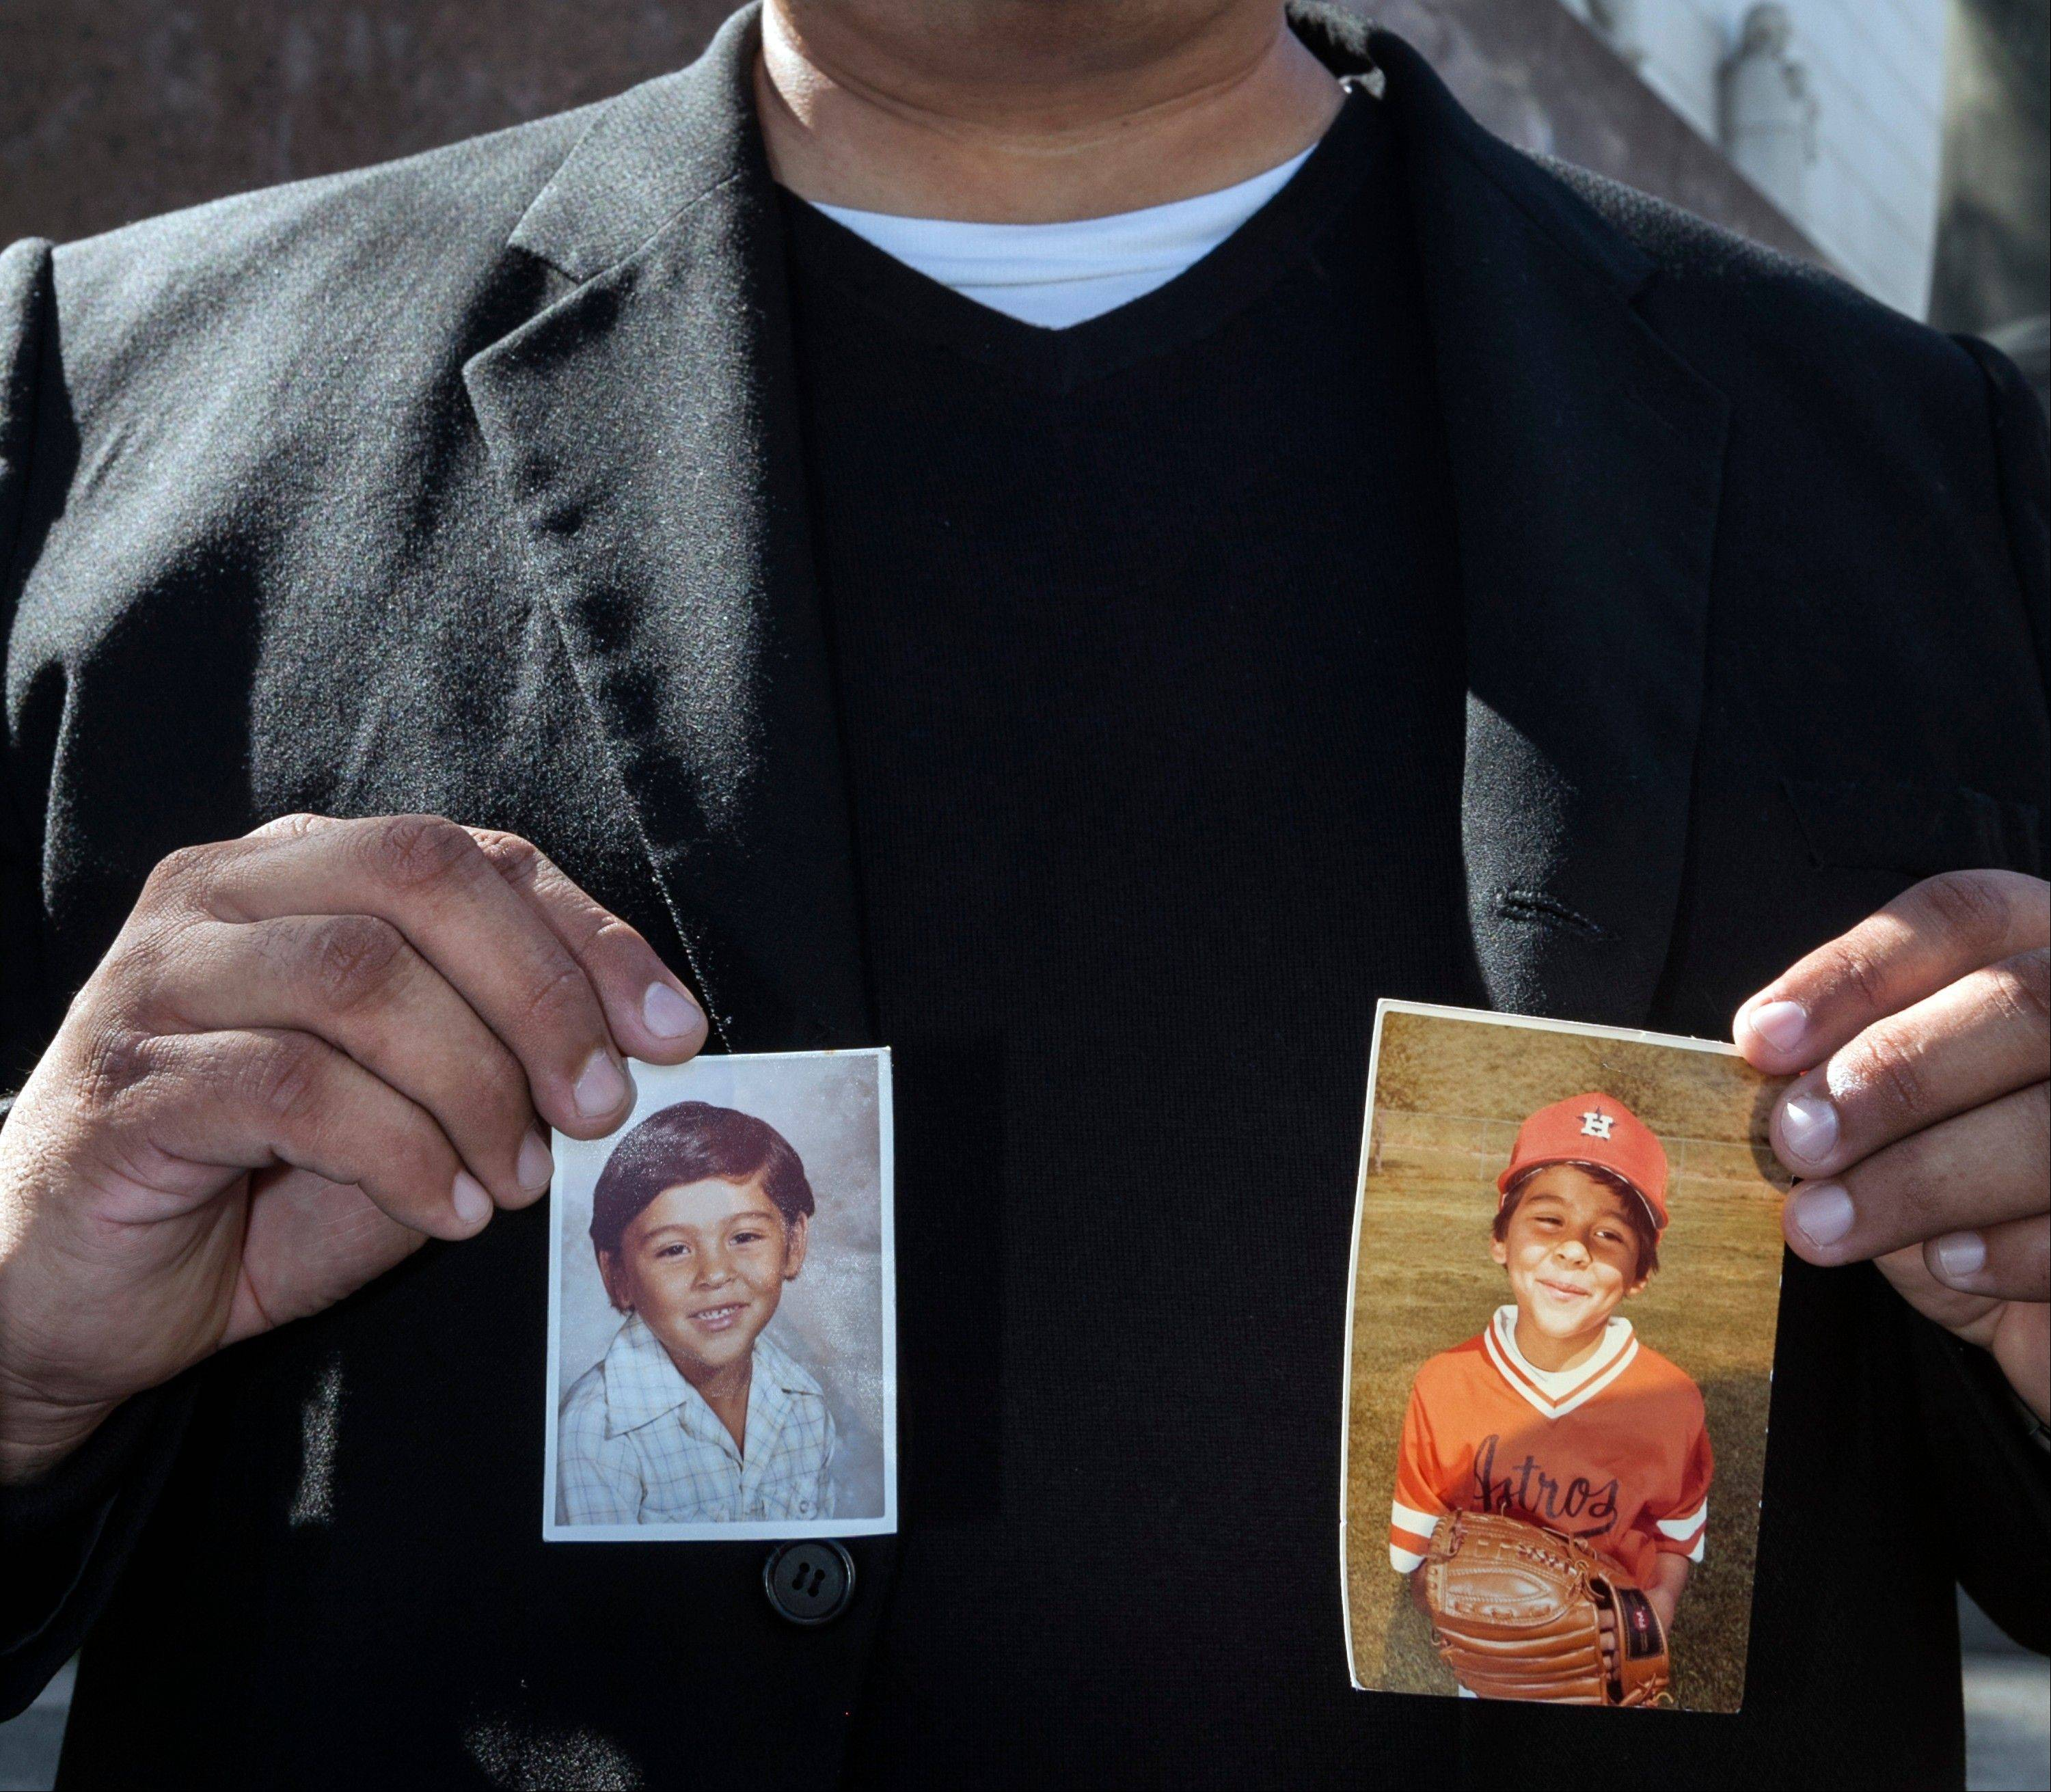 Michael Duran, a plaintiff in a sex abuse settlement with the Roman Catholic Archdiocese of Los Angeles, holds up pictures of himself when he was a child during a news conference to announce details of a nearly $10 million settlement of their lawsuits against the Archdiocese of Los Angeles Thursday, March 14, 2013. The U.S. church's challenges include recovering from the clergy sexual abuse scandal, which has resulted in the bankruptcies of prominent archdioceses and cost the Church in America an estimated $3 billion in legal settlements.